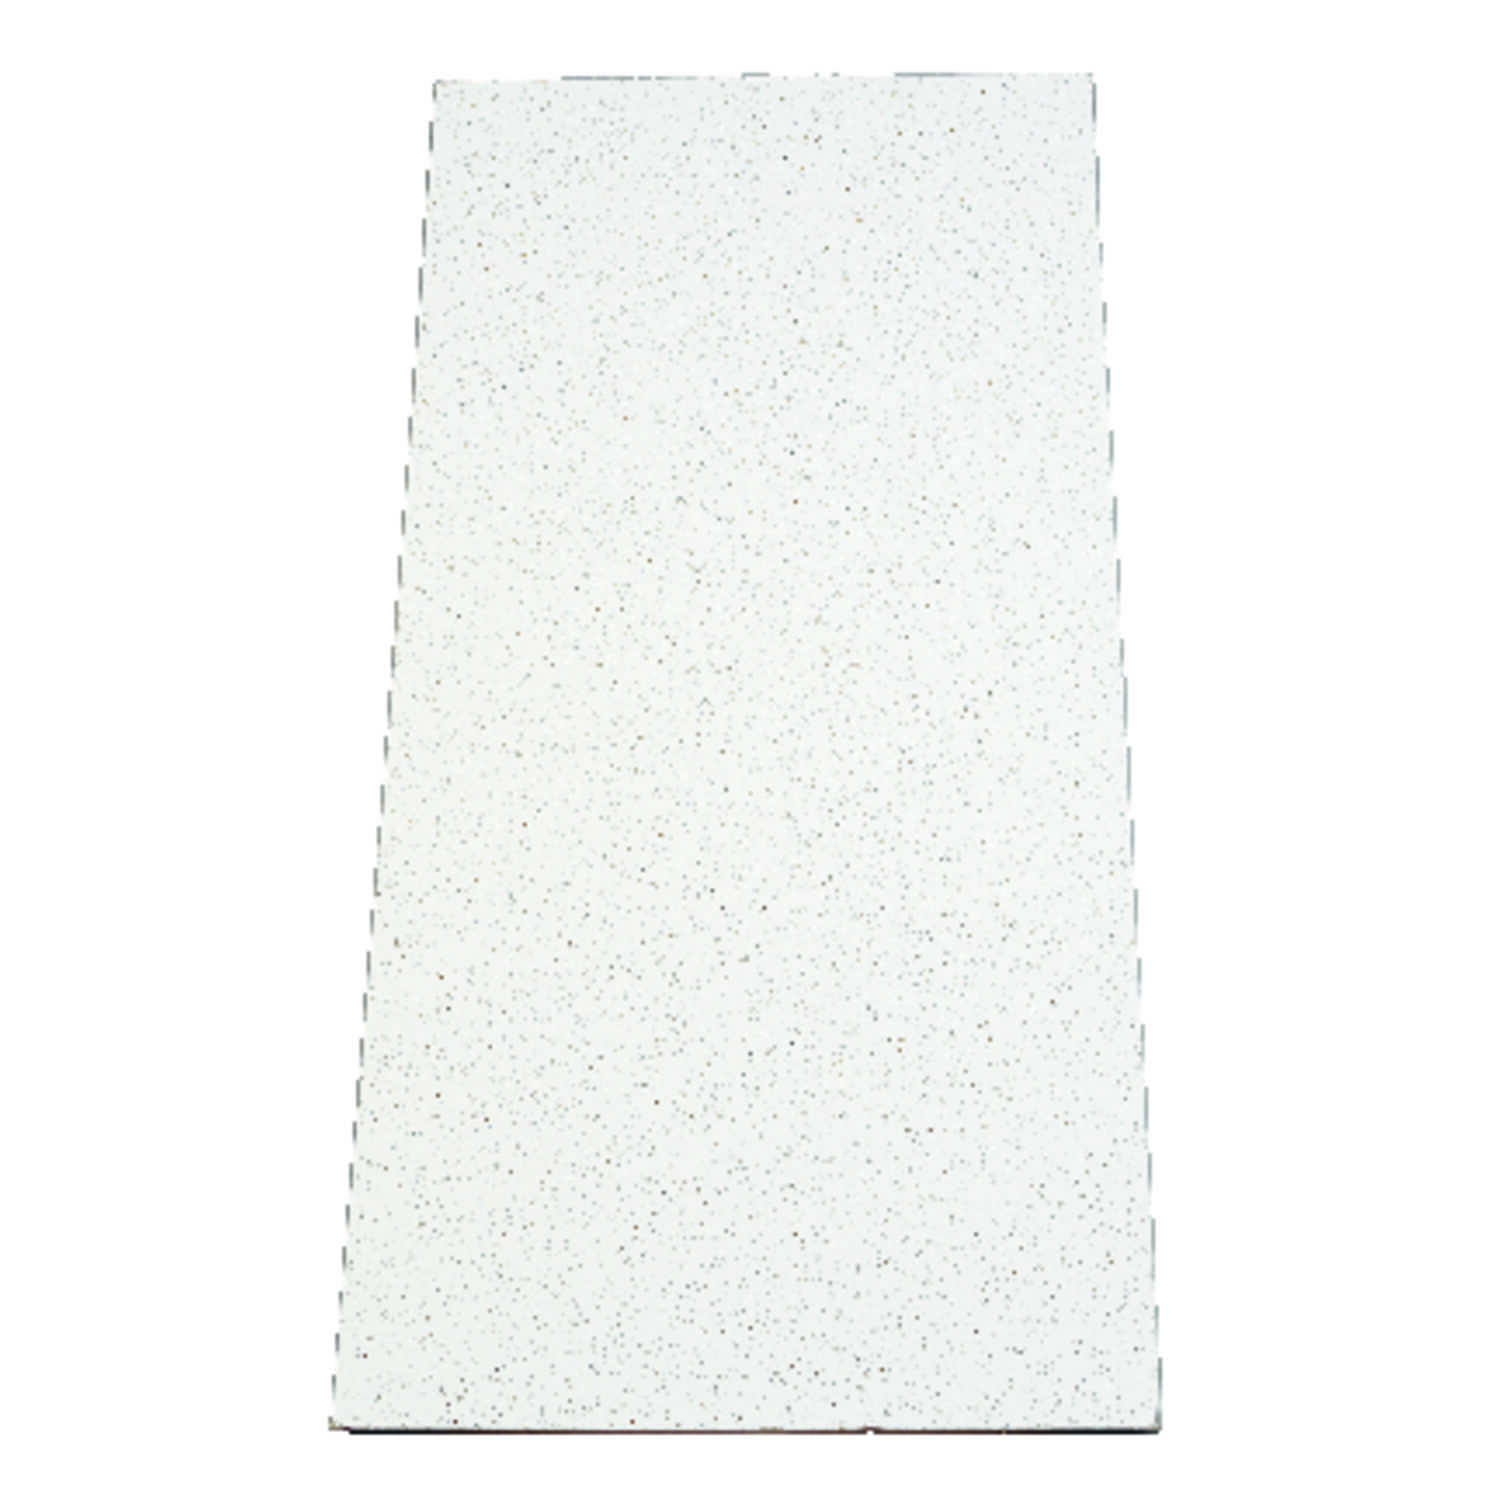 USG  R2310  Radar  48 in. L x 24 in. W 0.625 in. Square Edge  Ceiling Tile  1 pk